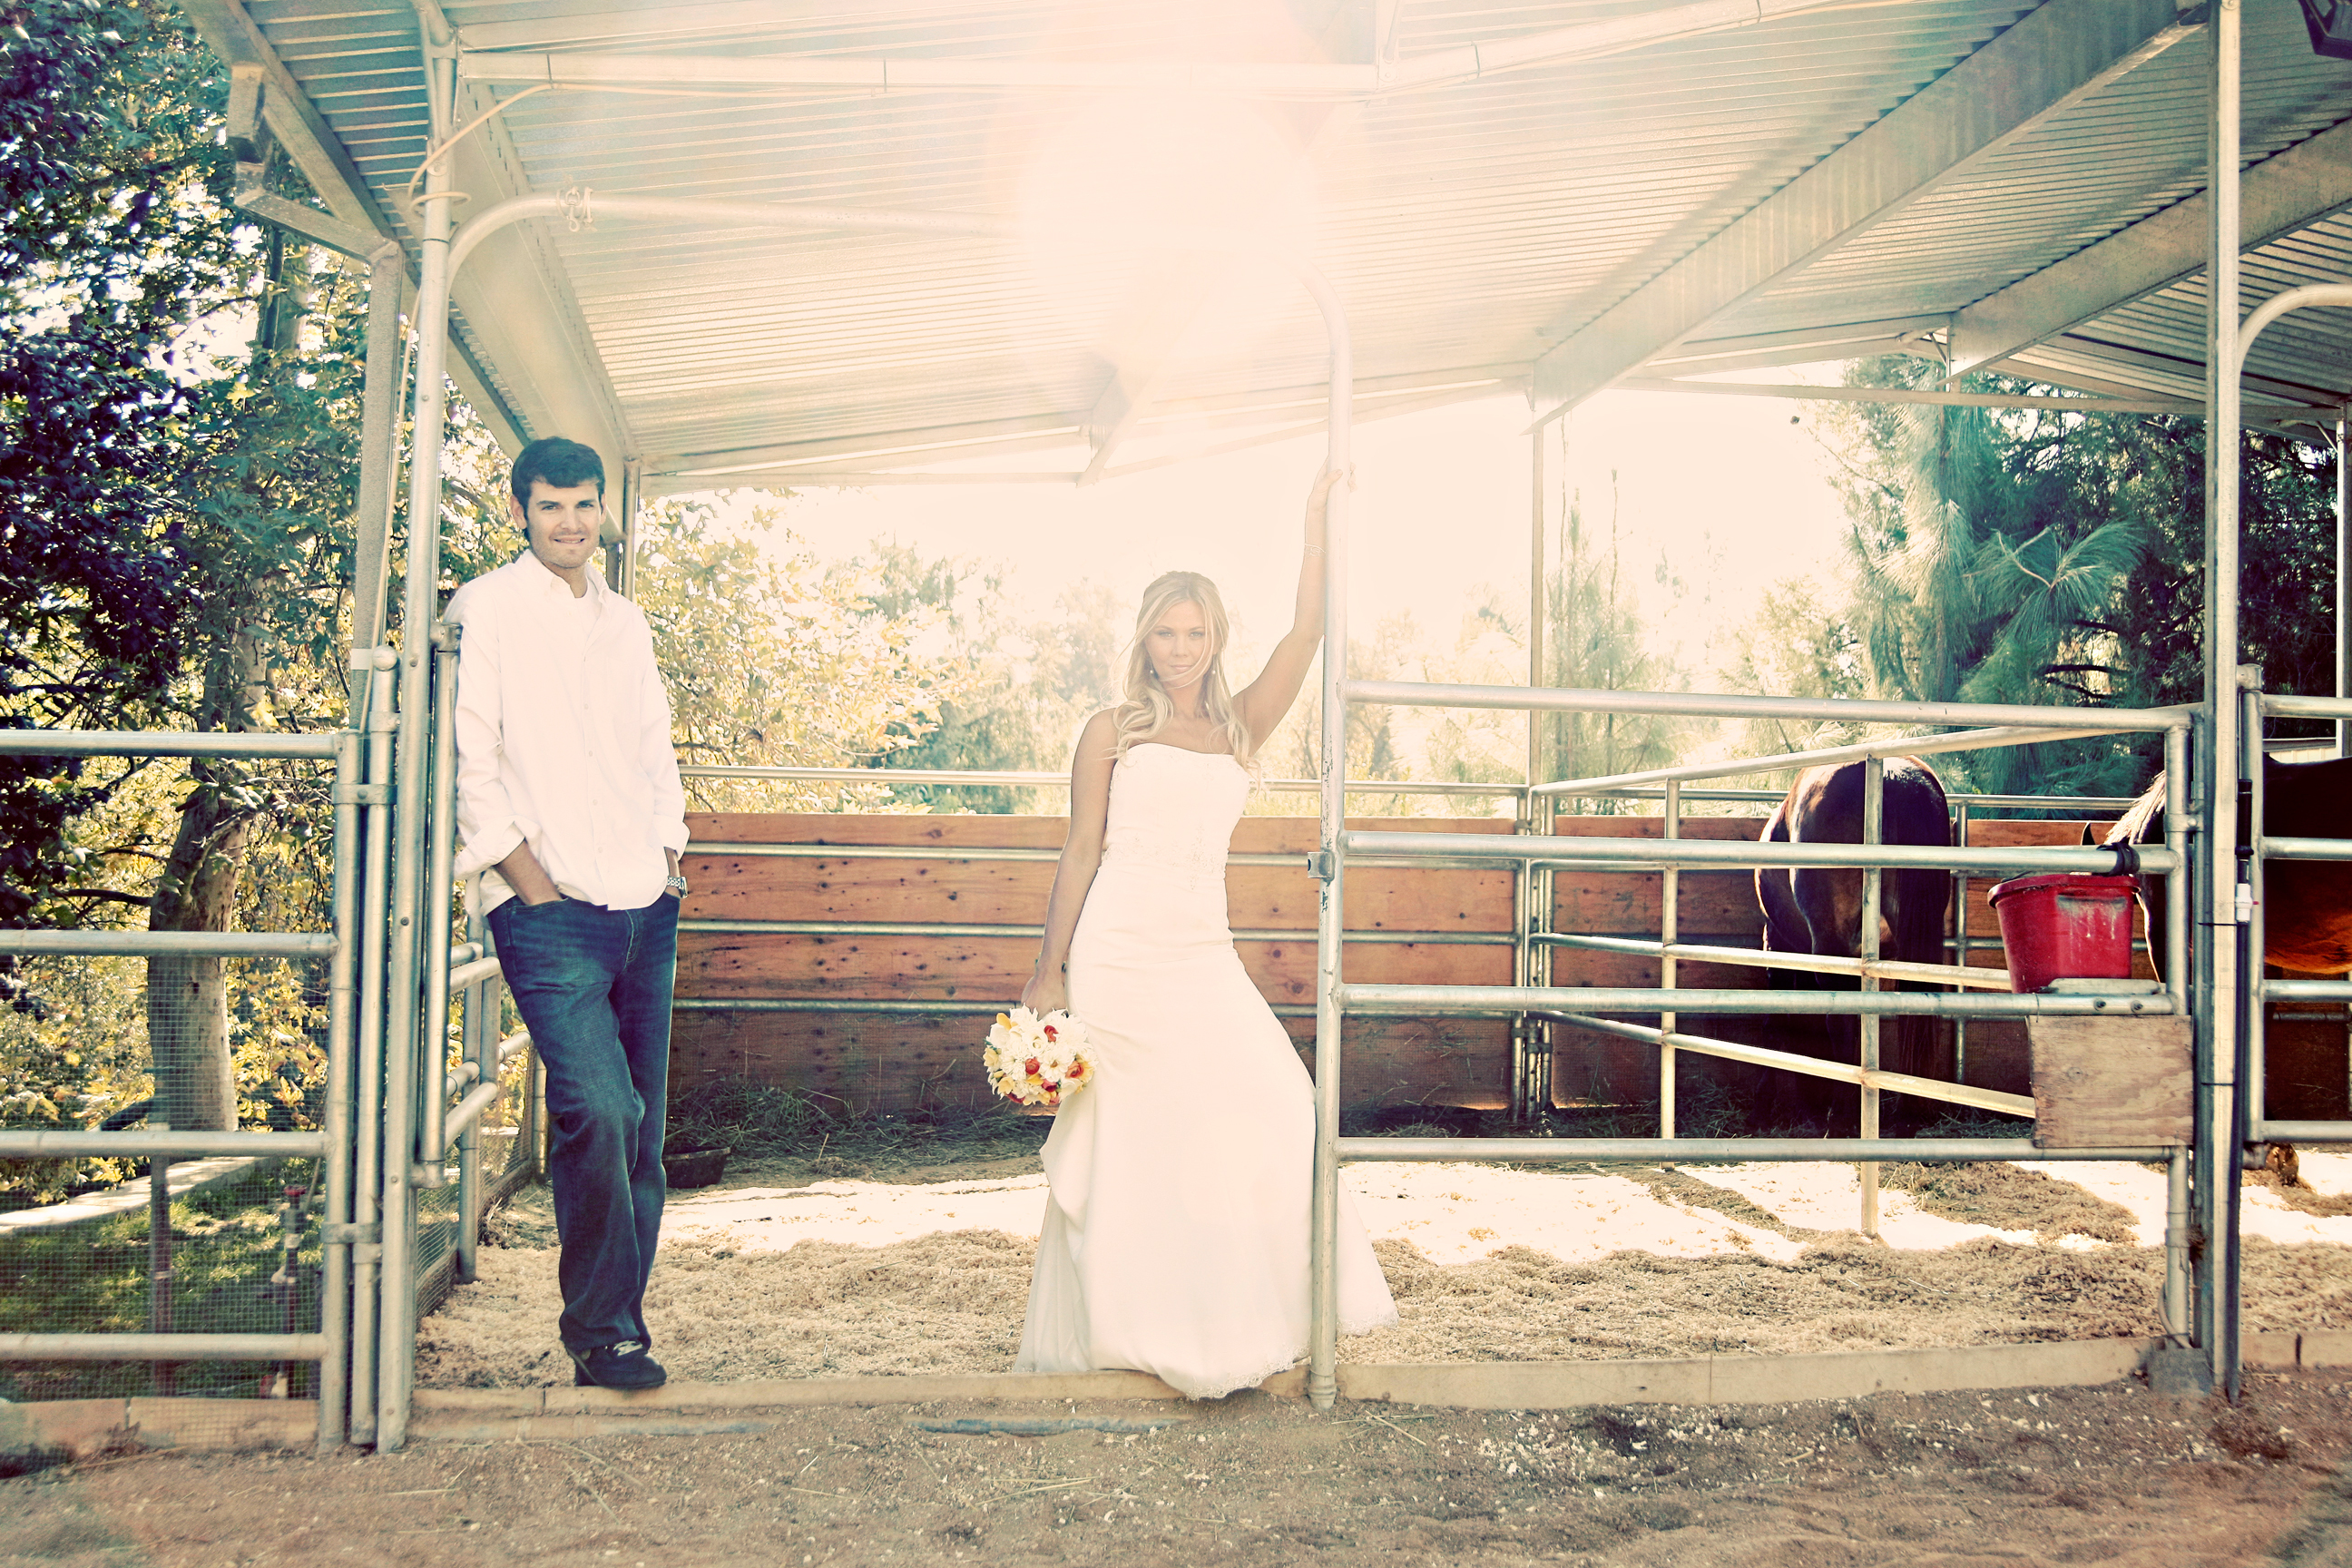 Photography, Groom, Portrait, Wedding, California, Farm, Agoura, Stable, Horses, Brige, Karen ard photography